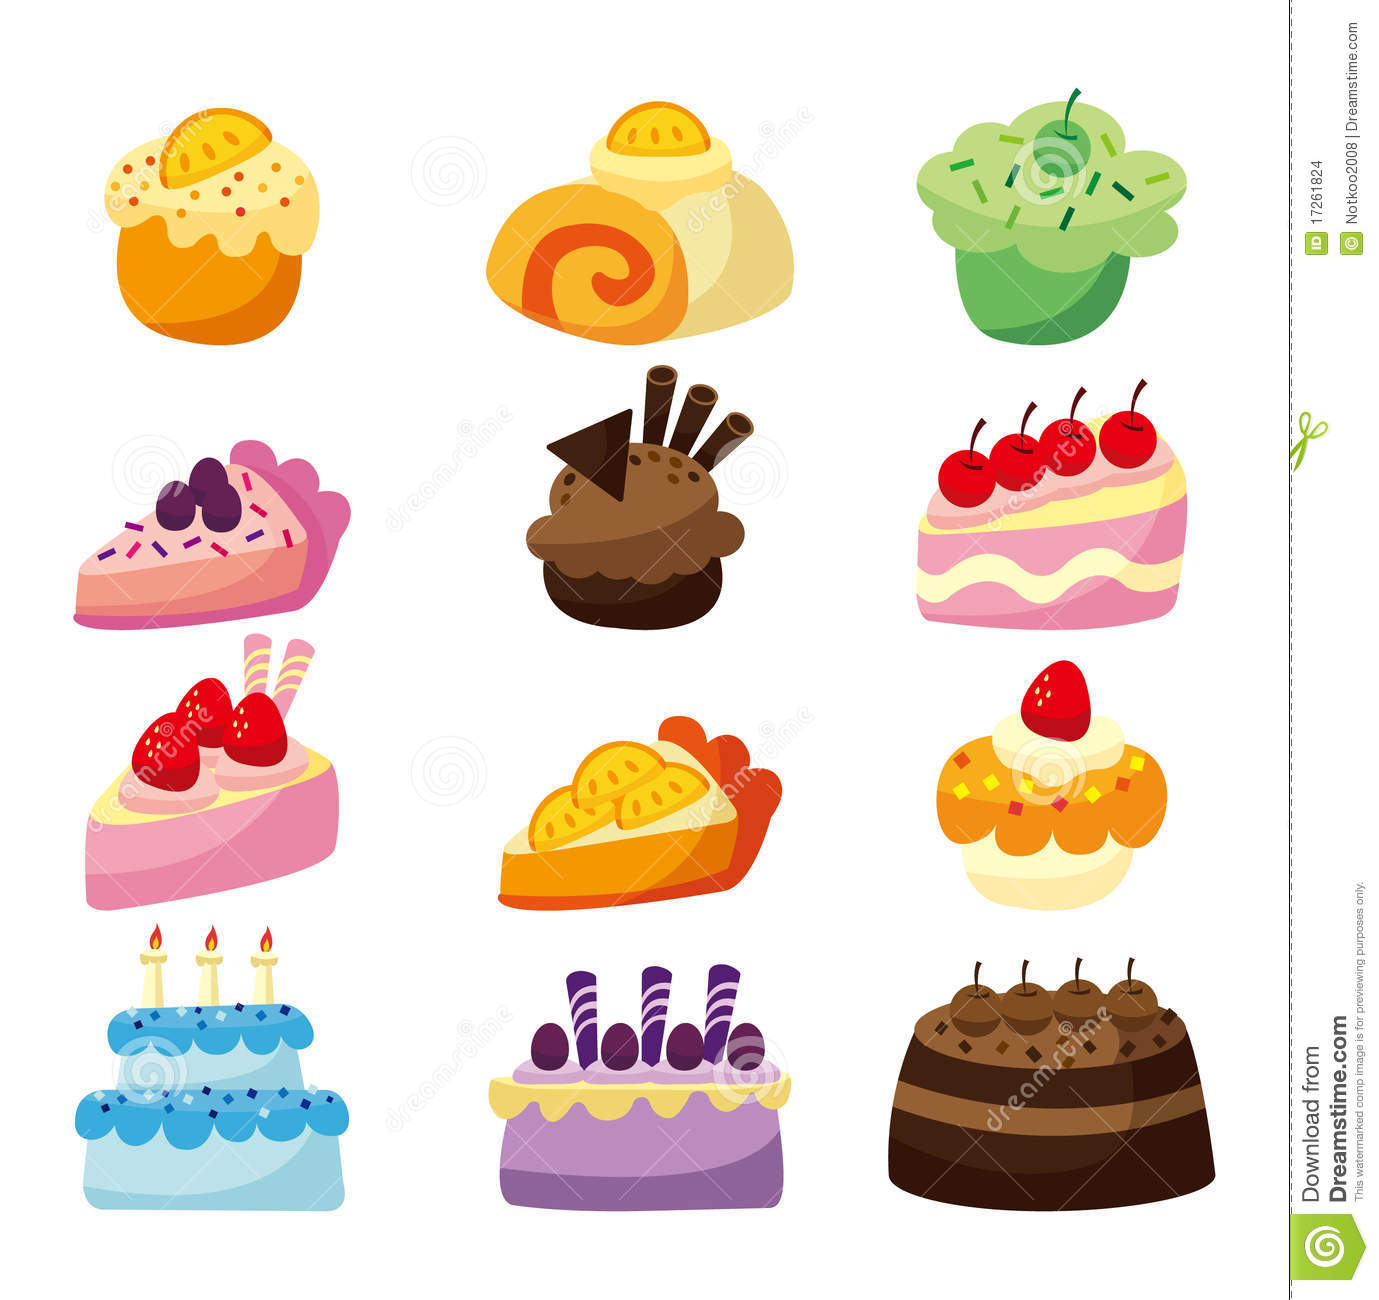 Birthday Cake Illustration Tumblr